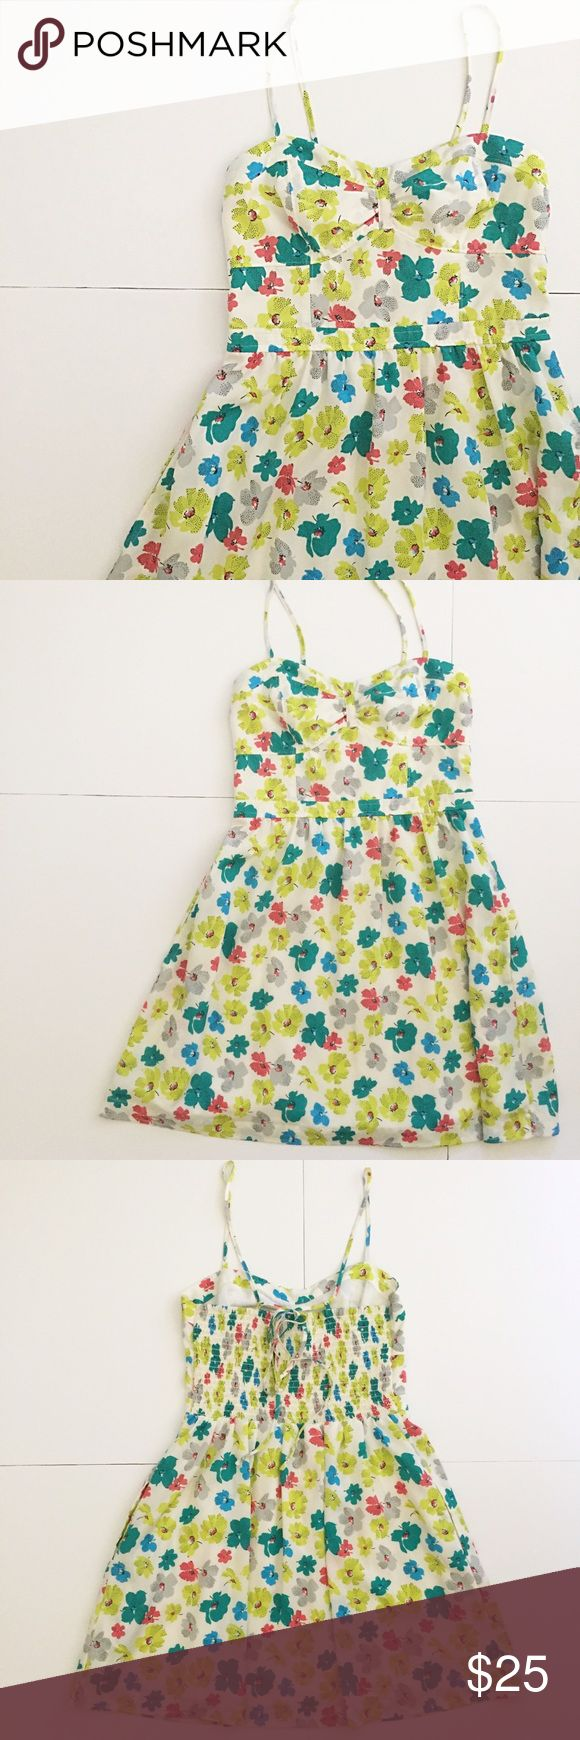 "American Eagle Floral Spaghetti Strap Mini Dress Beautiful dress from American Eagle Outfitters! Spaghetti Strap! Colors are white overall with blue, green, Lemon lime green/yellow, gray/grey, and pink flower print. Size 6. Bustier style top! Has a defined waist. Straps are completely adjustable & are controlled by a tie in the back- make it whatever length you need! 26 1/4"" long from top of cup to hem, 14 1/2"" pit to pit, waist 13 1/4"" across, hem 26 3/4"". The back has a Ribbed part that is…"